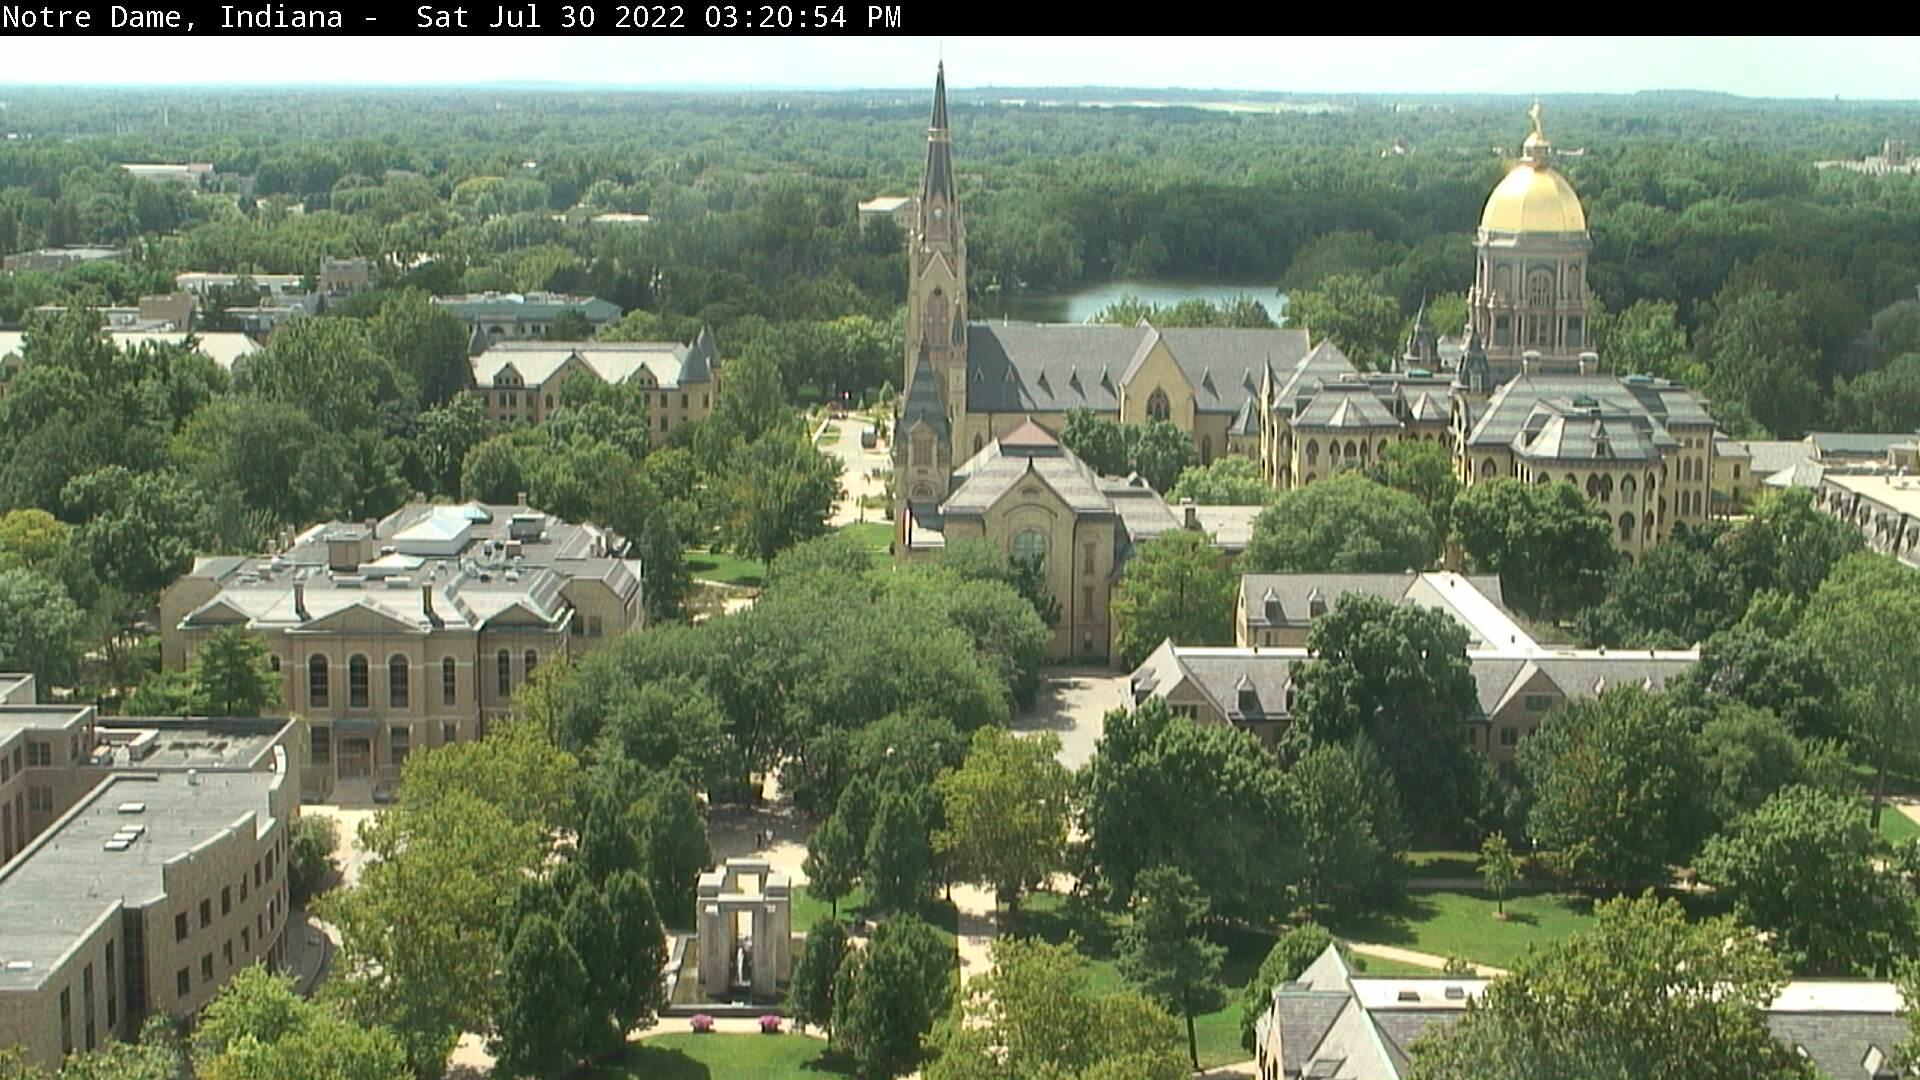 Webcam Argos: University of Notre Dame